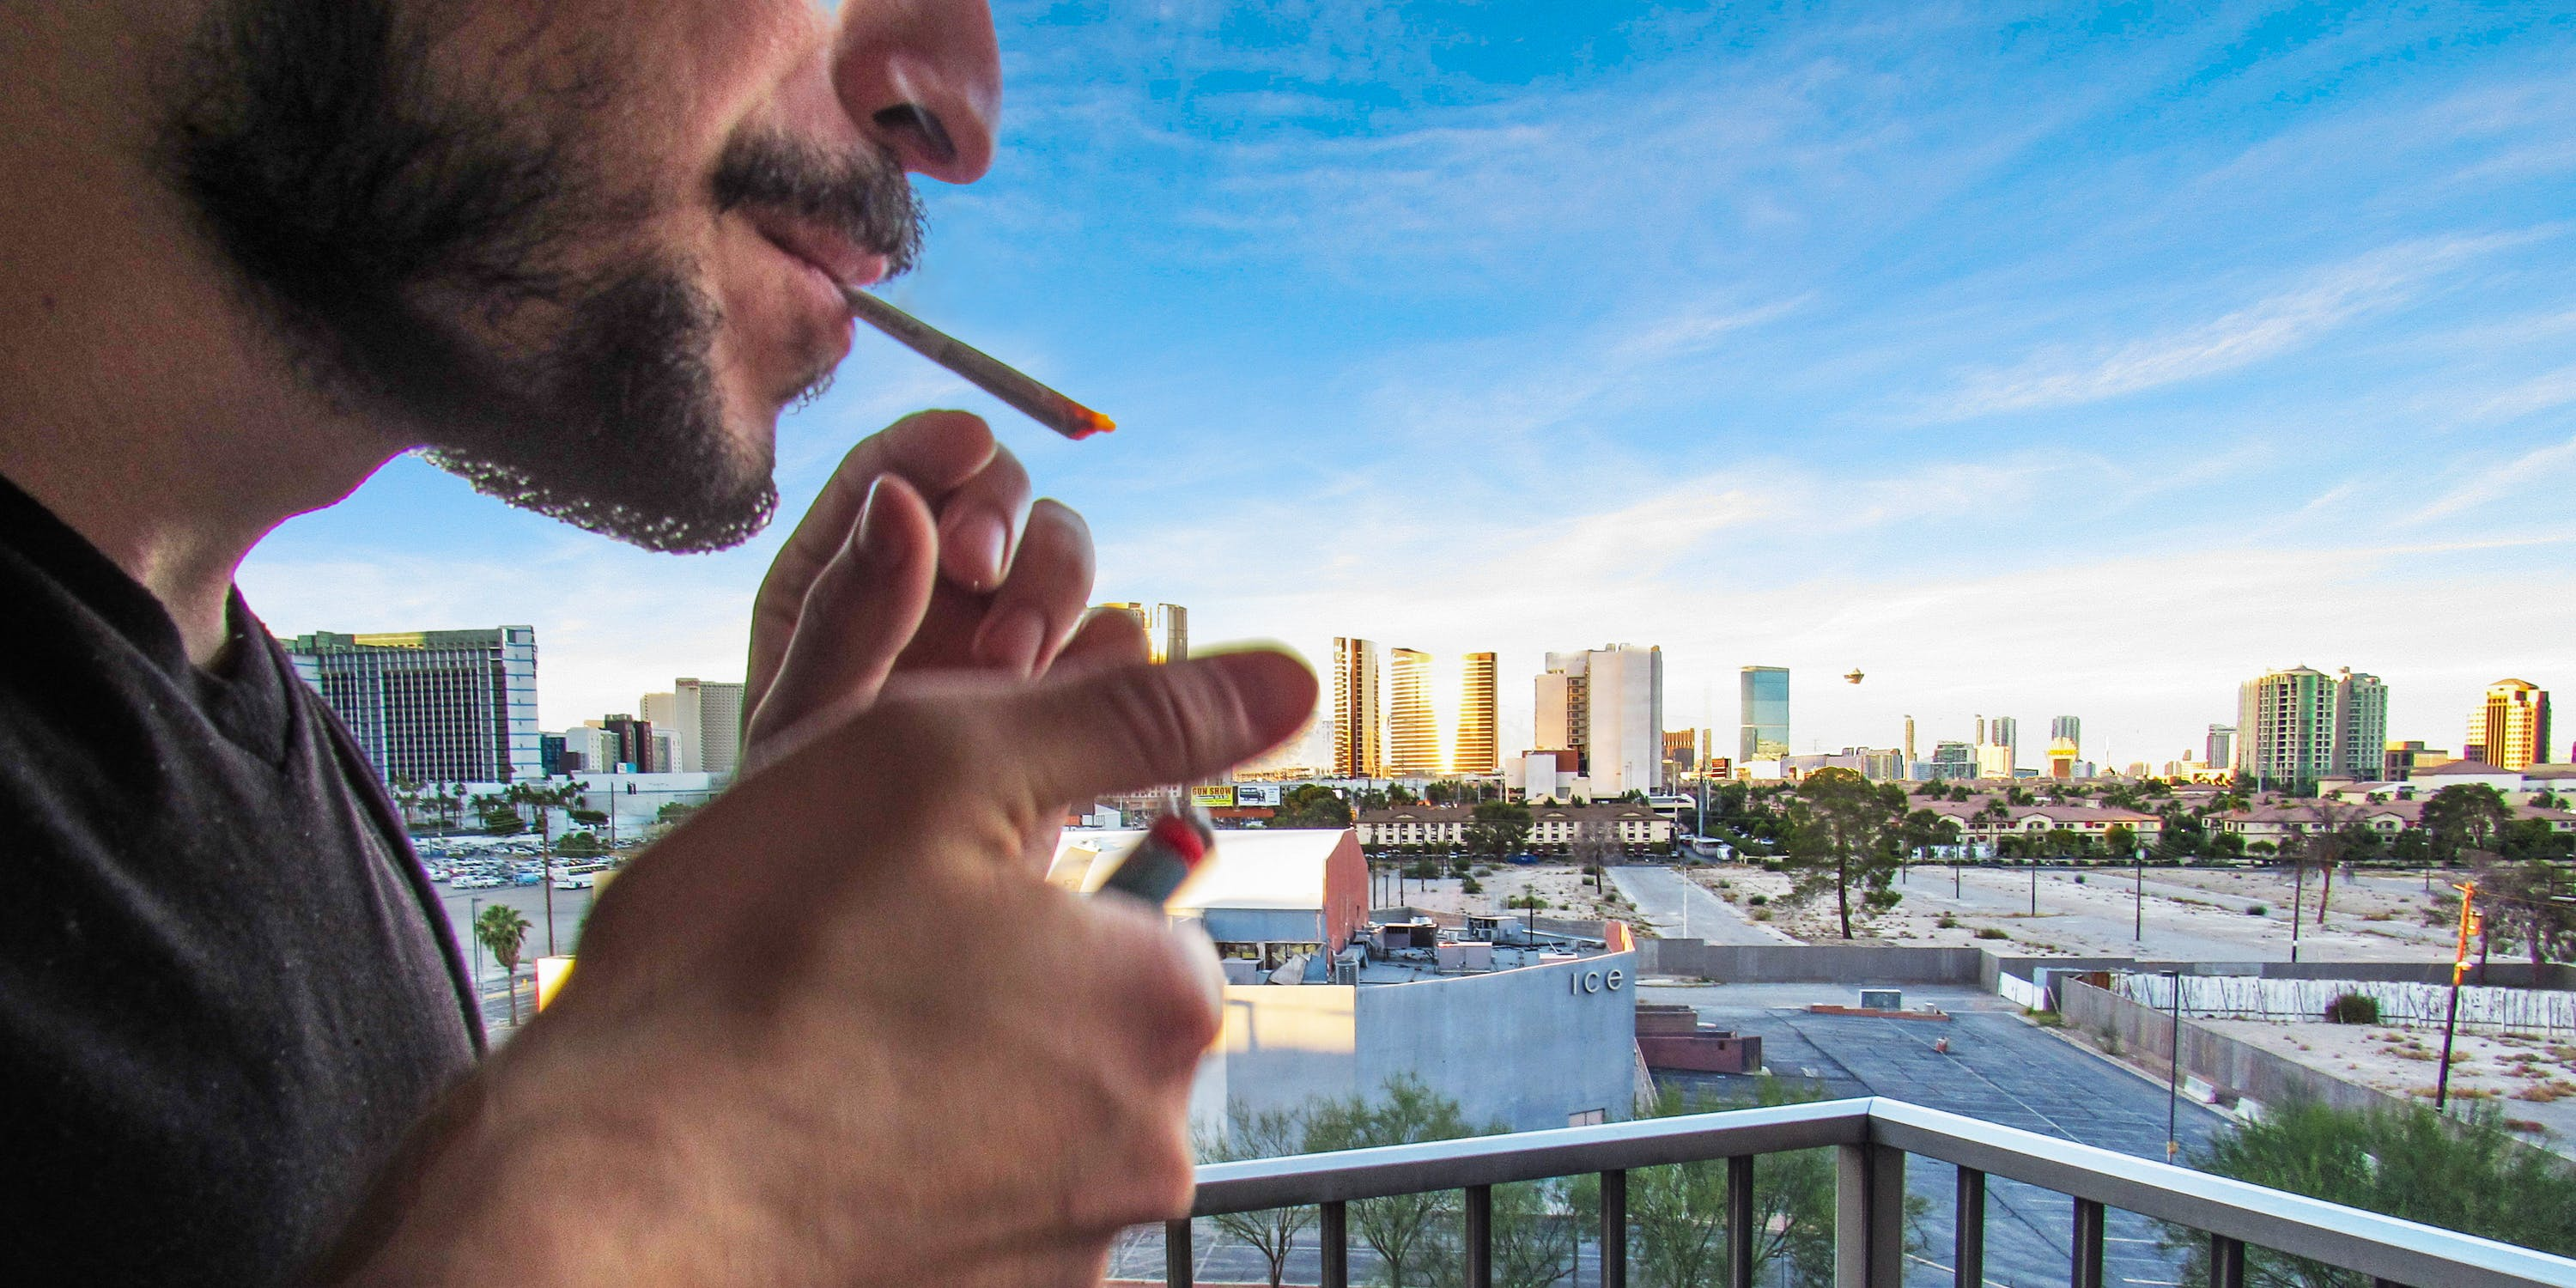 Recreational Pot in Southern Nevada Just Levelled Up